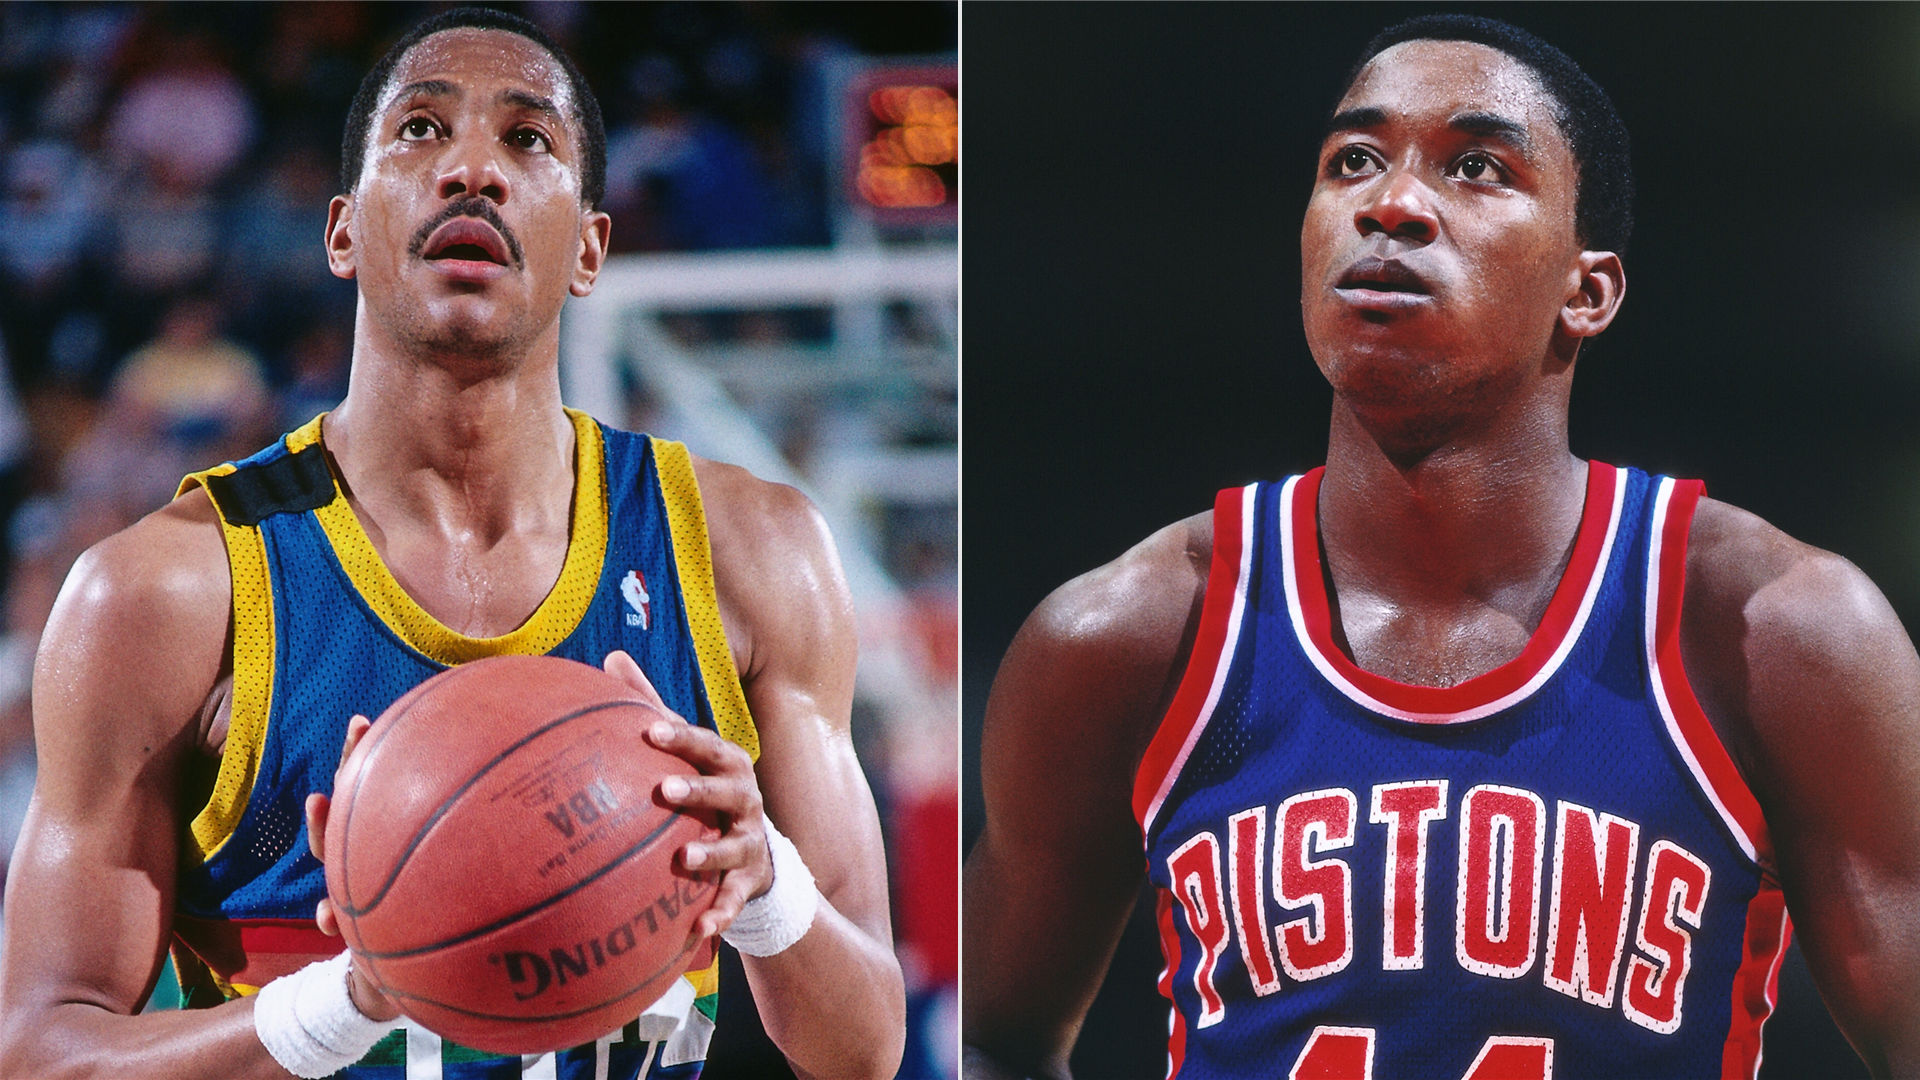 Fast Facts On The Highest Scoring Game In Nba History